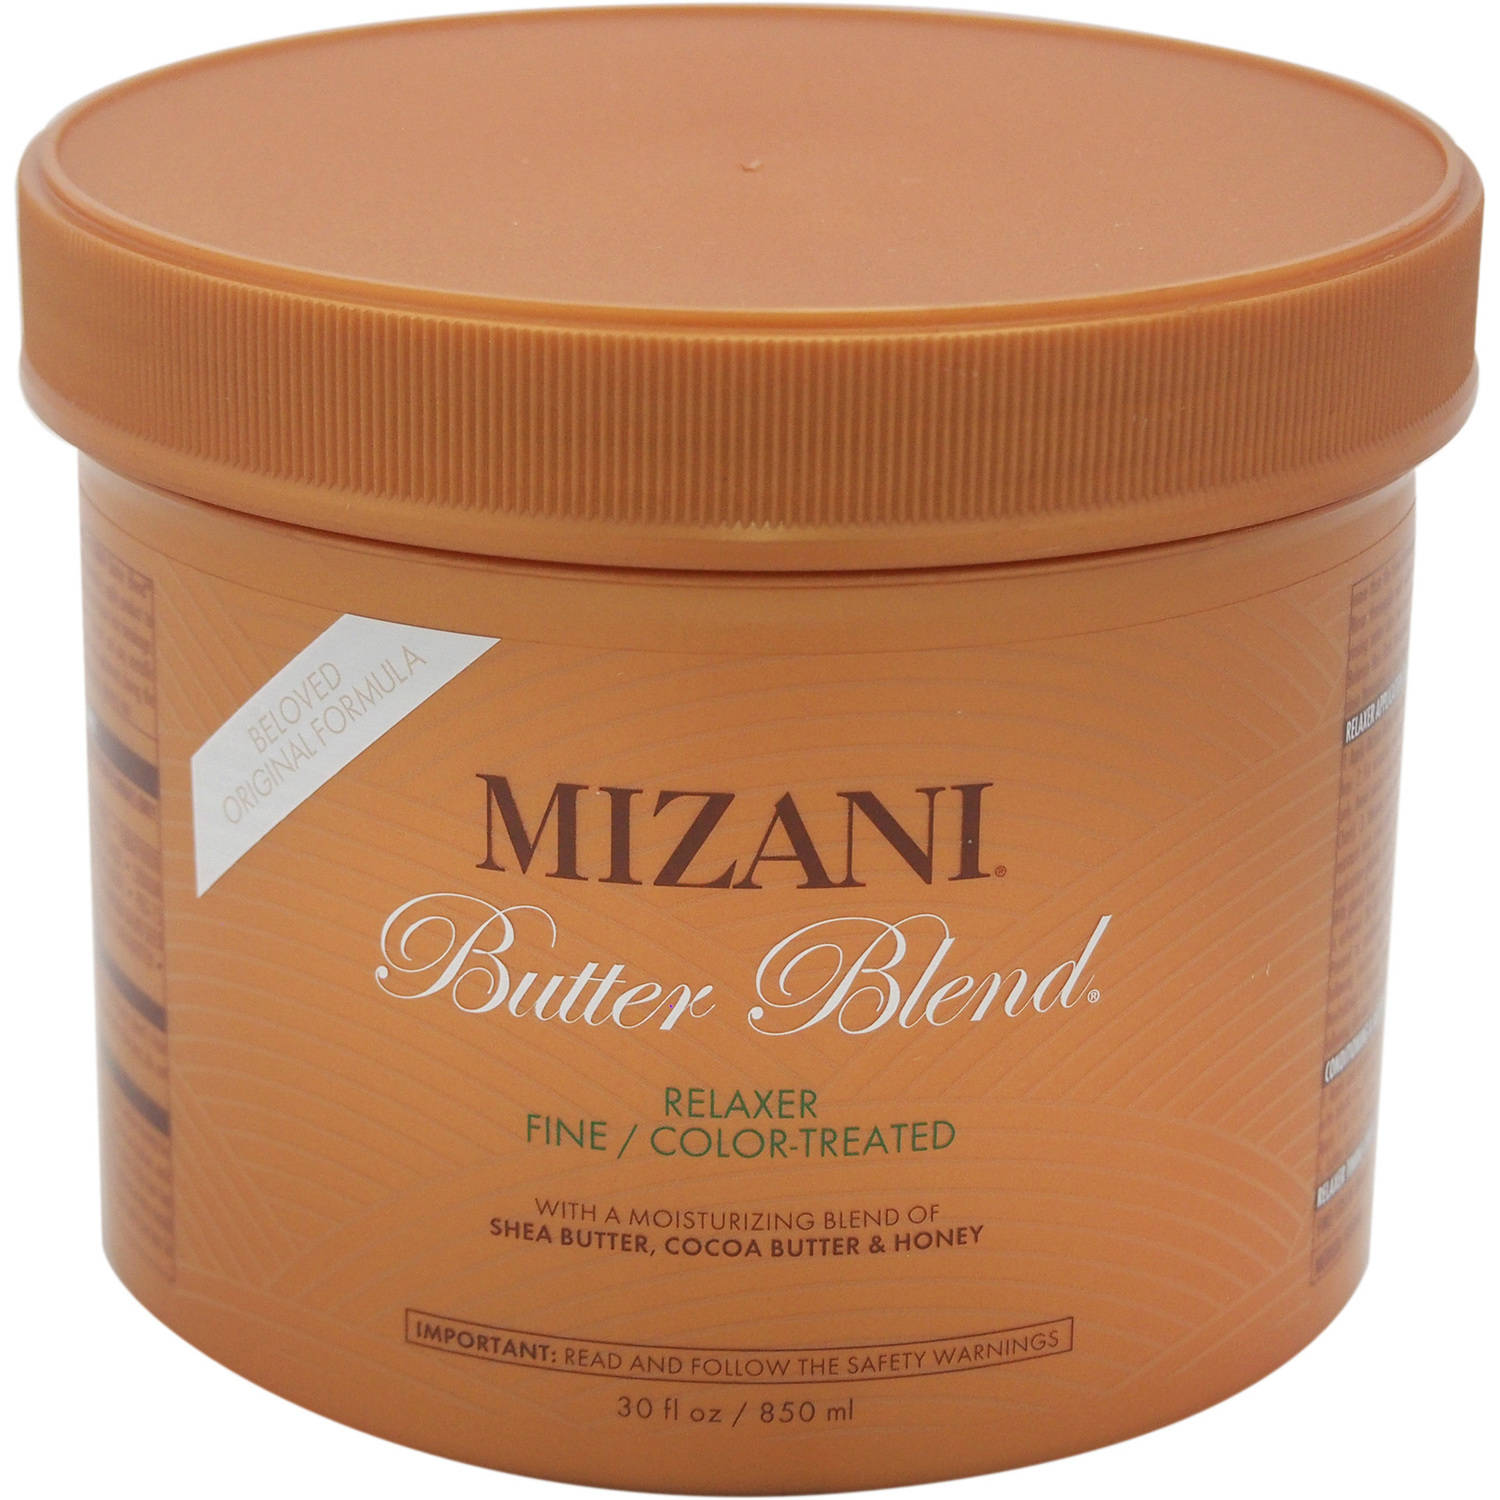 Butter Blend Rhelaxer For Fine/Color Treated Hair By Mizani, 30 Oz